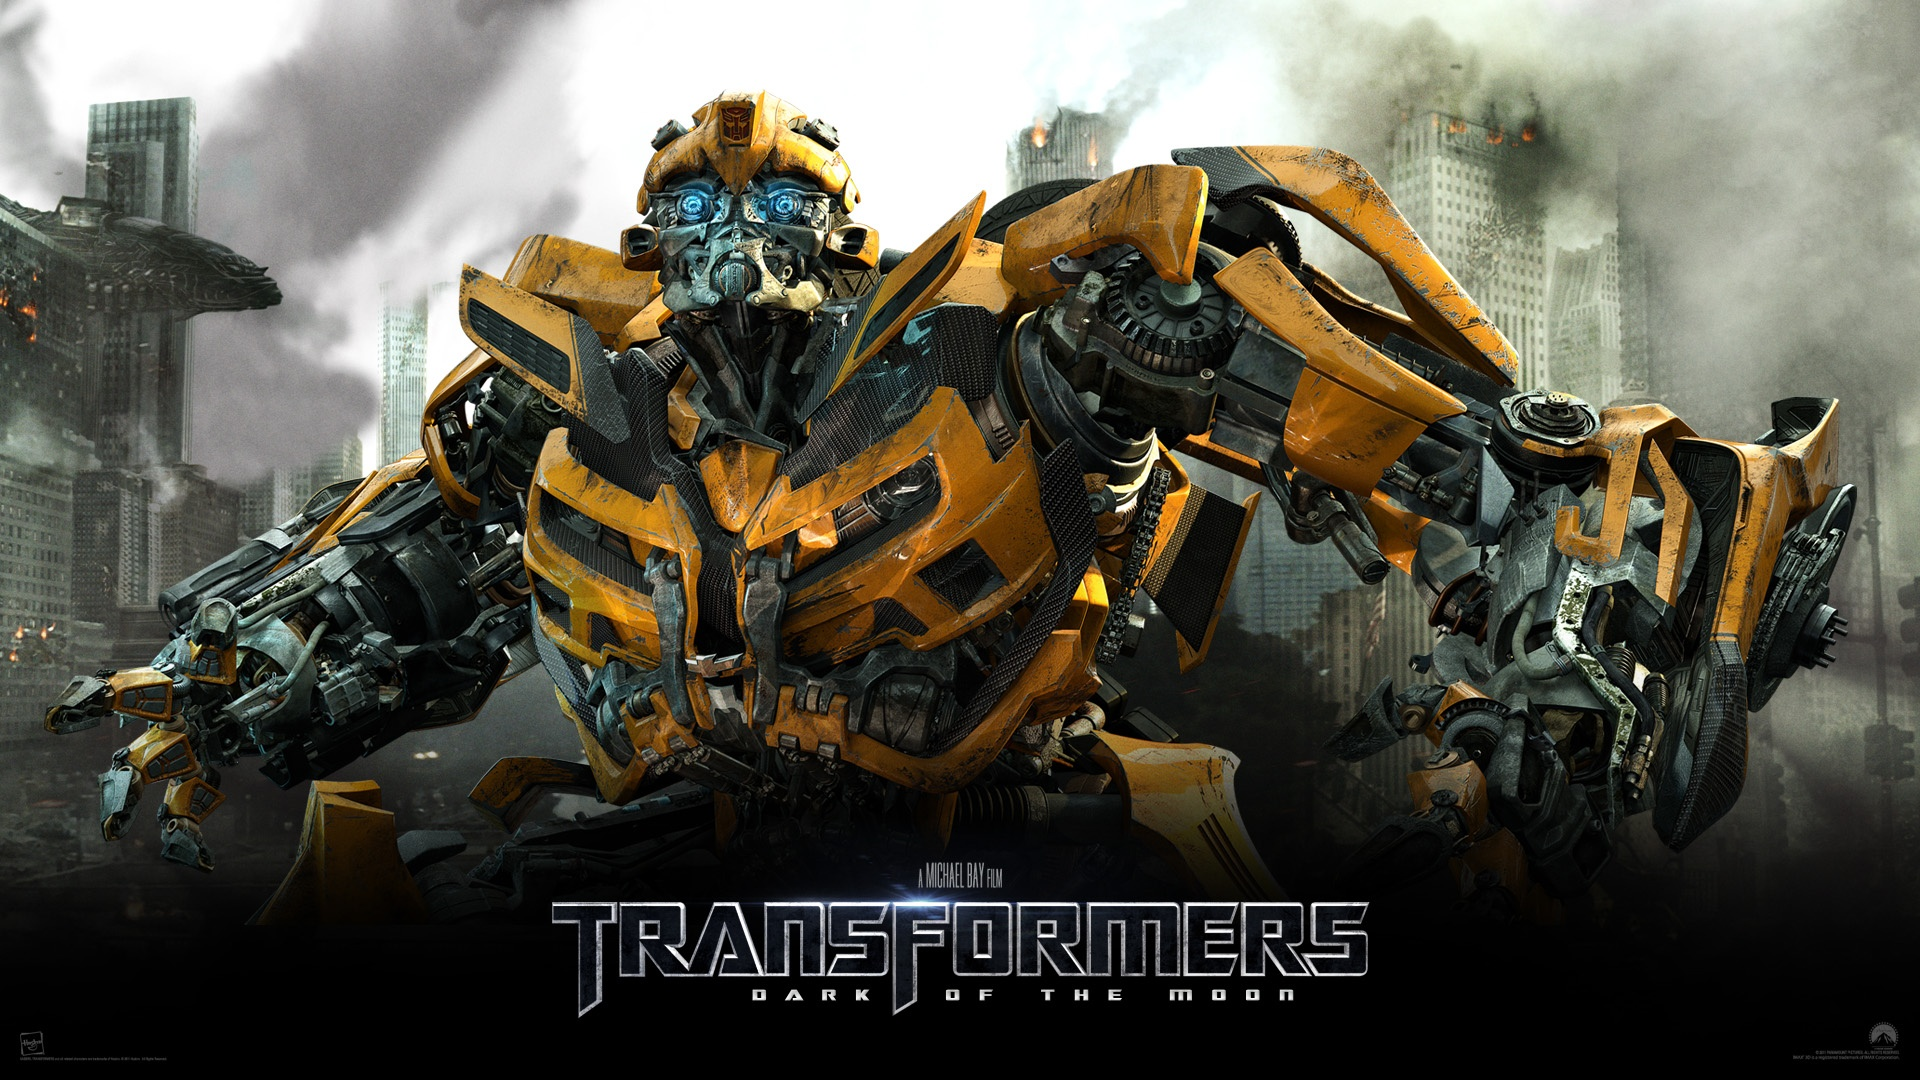 bumblebee transformers dark of the moon wallpapers in jpg format for